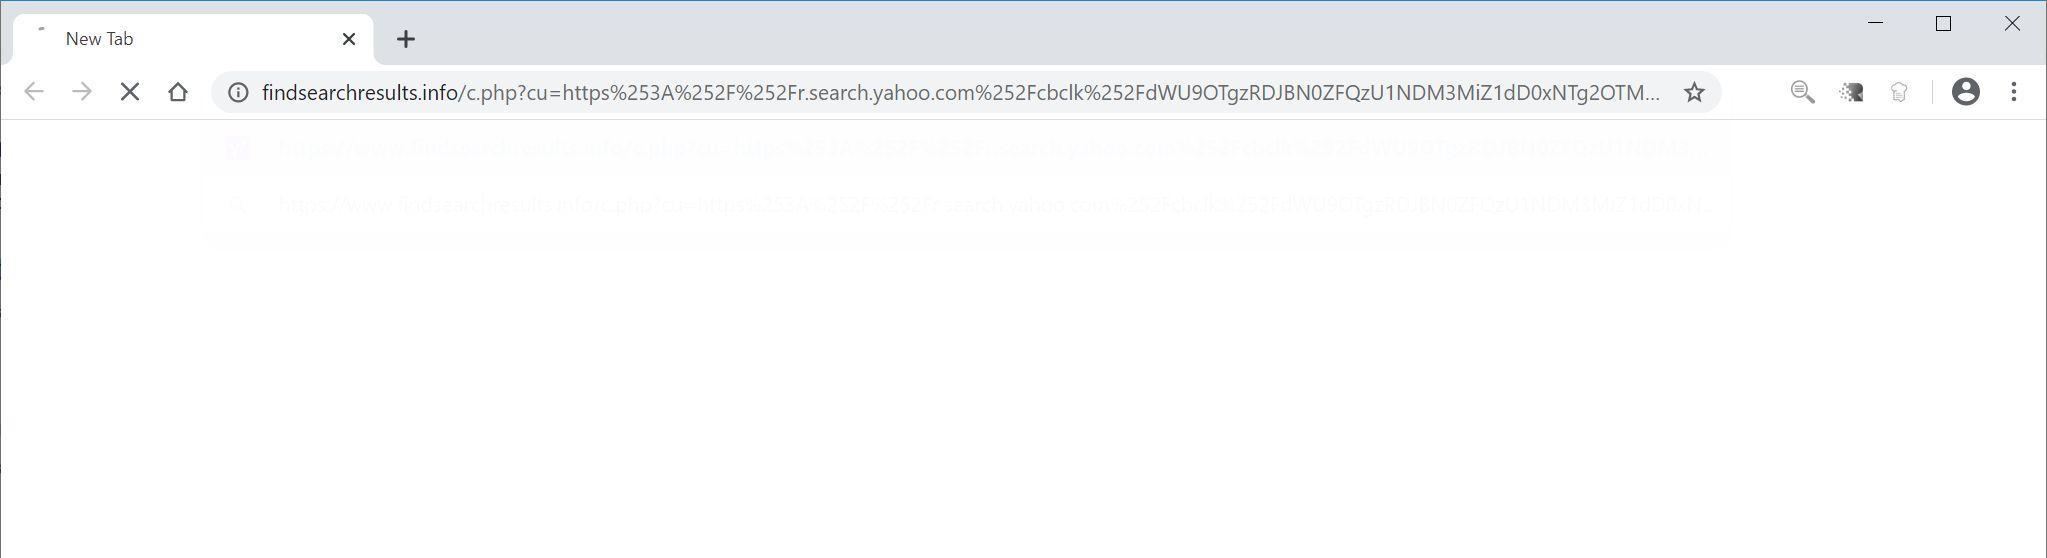 Image: Chrome browser is redirected to Findsearchresults.info